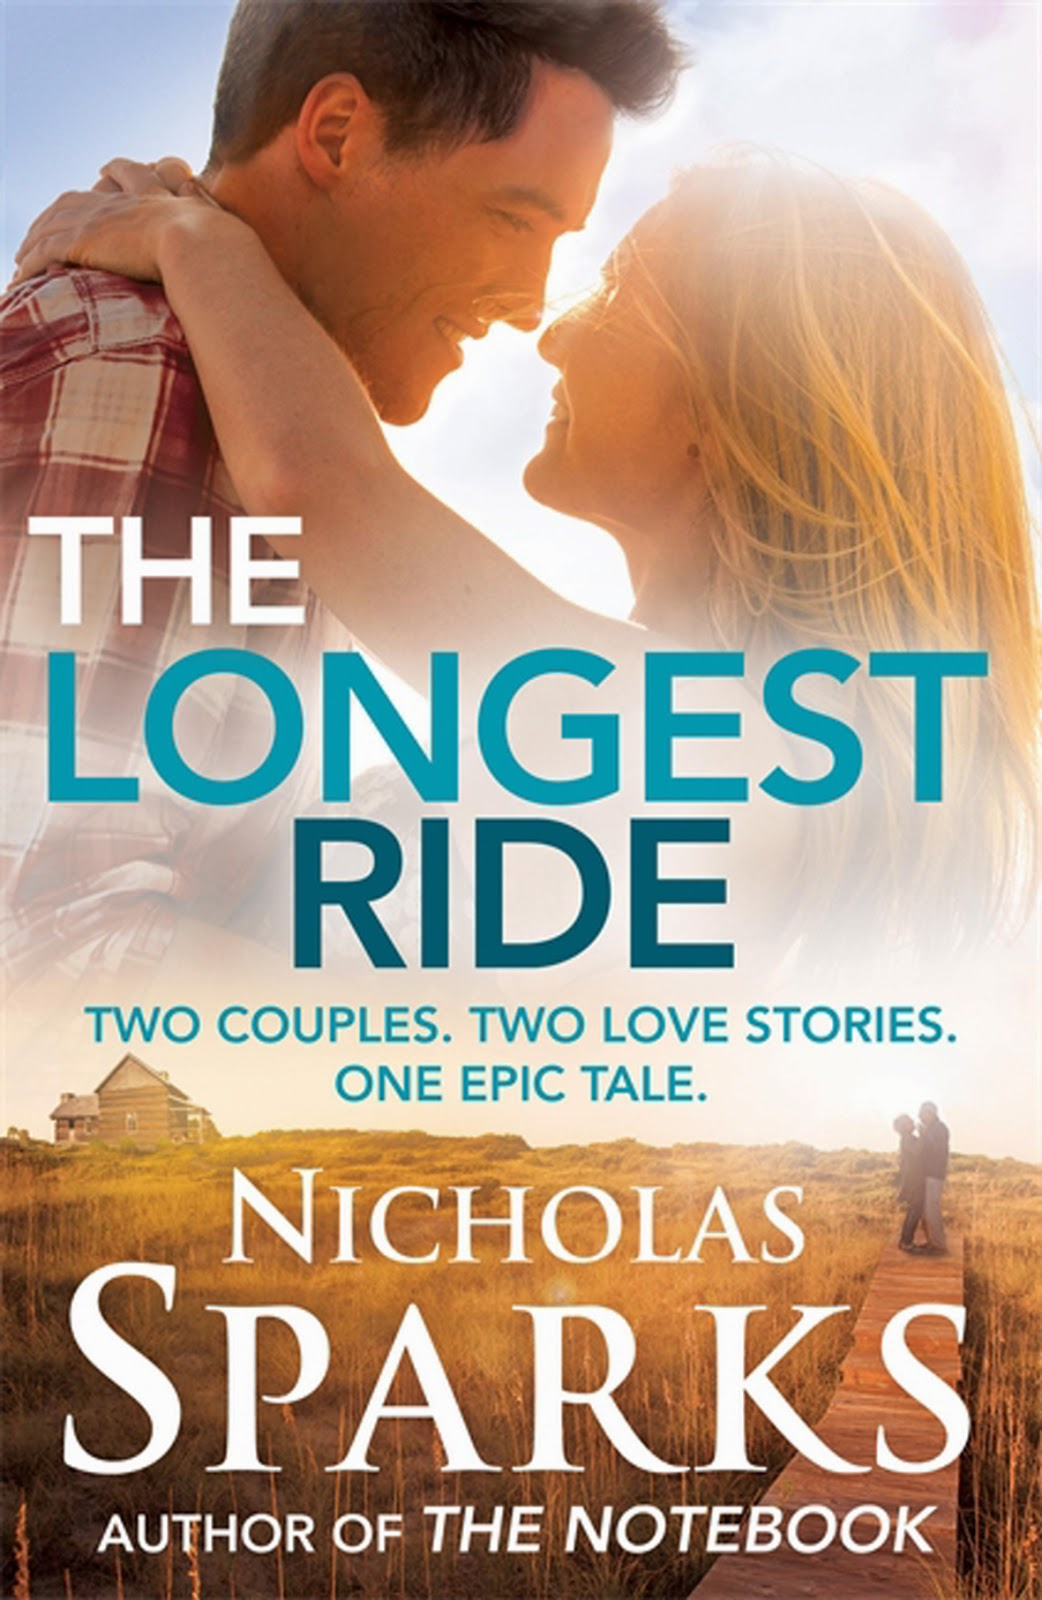 https://www.goodreads.com/book/show/17407748-the-longest-ride